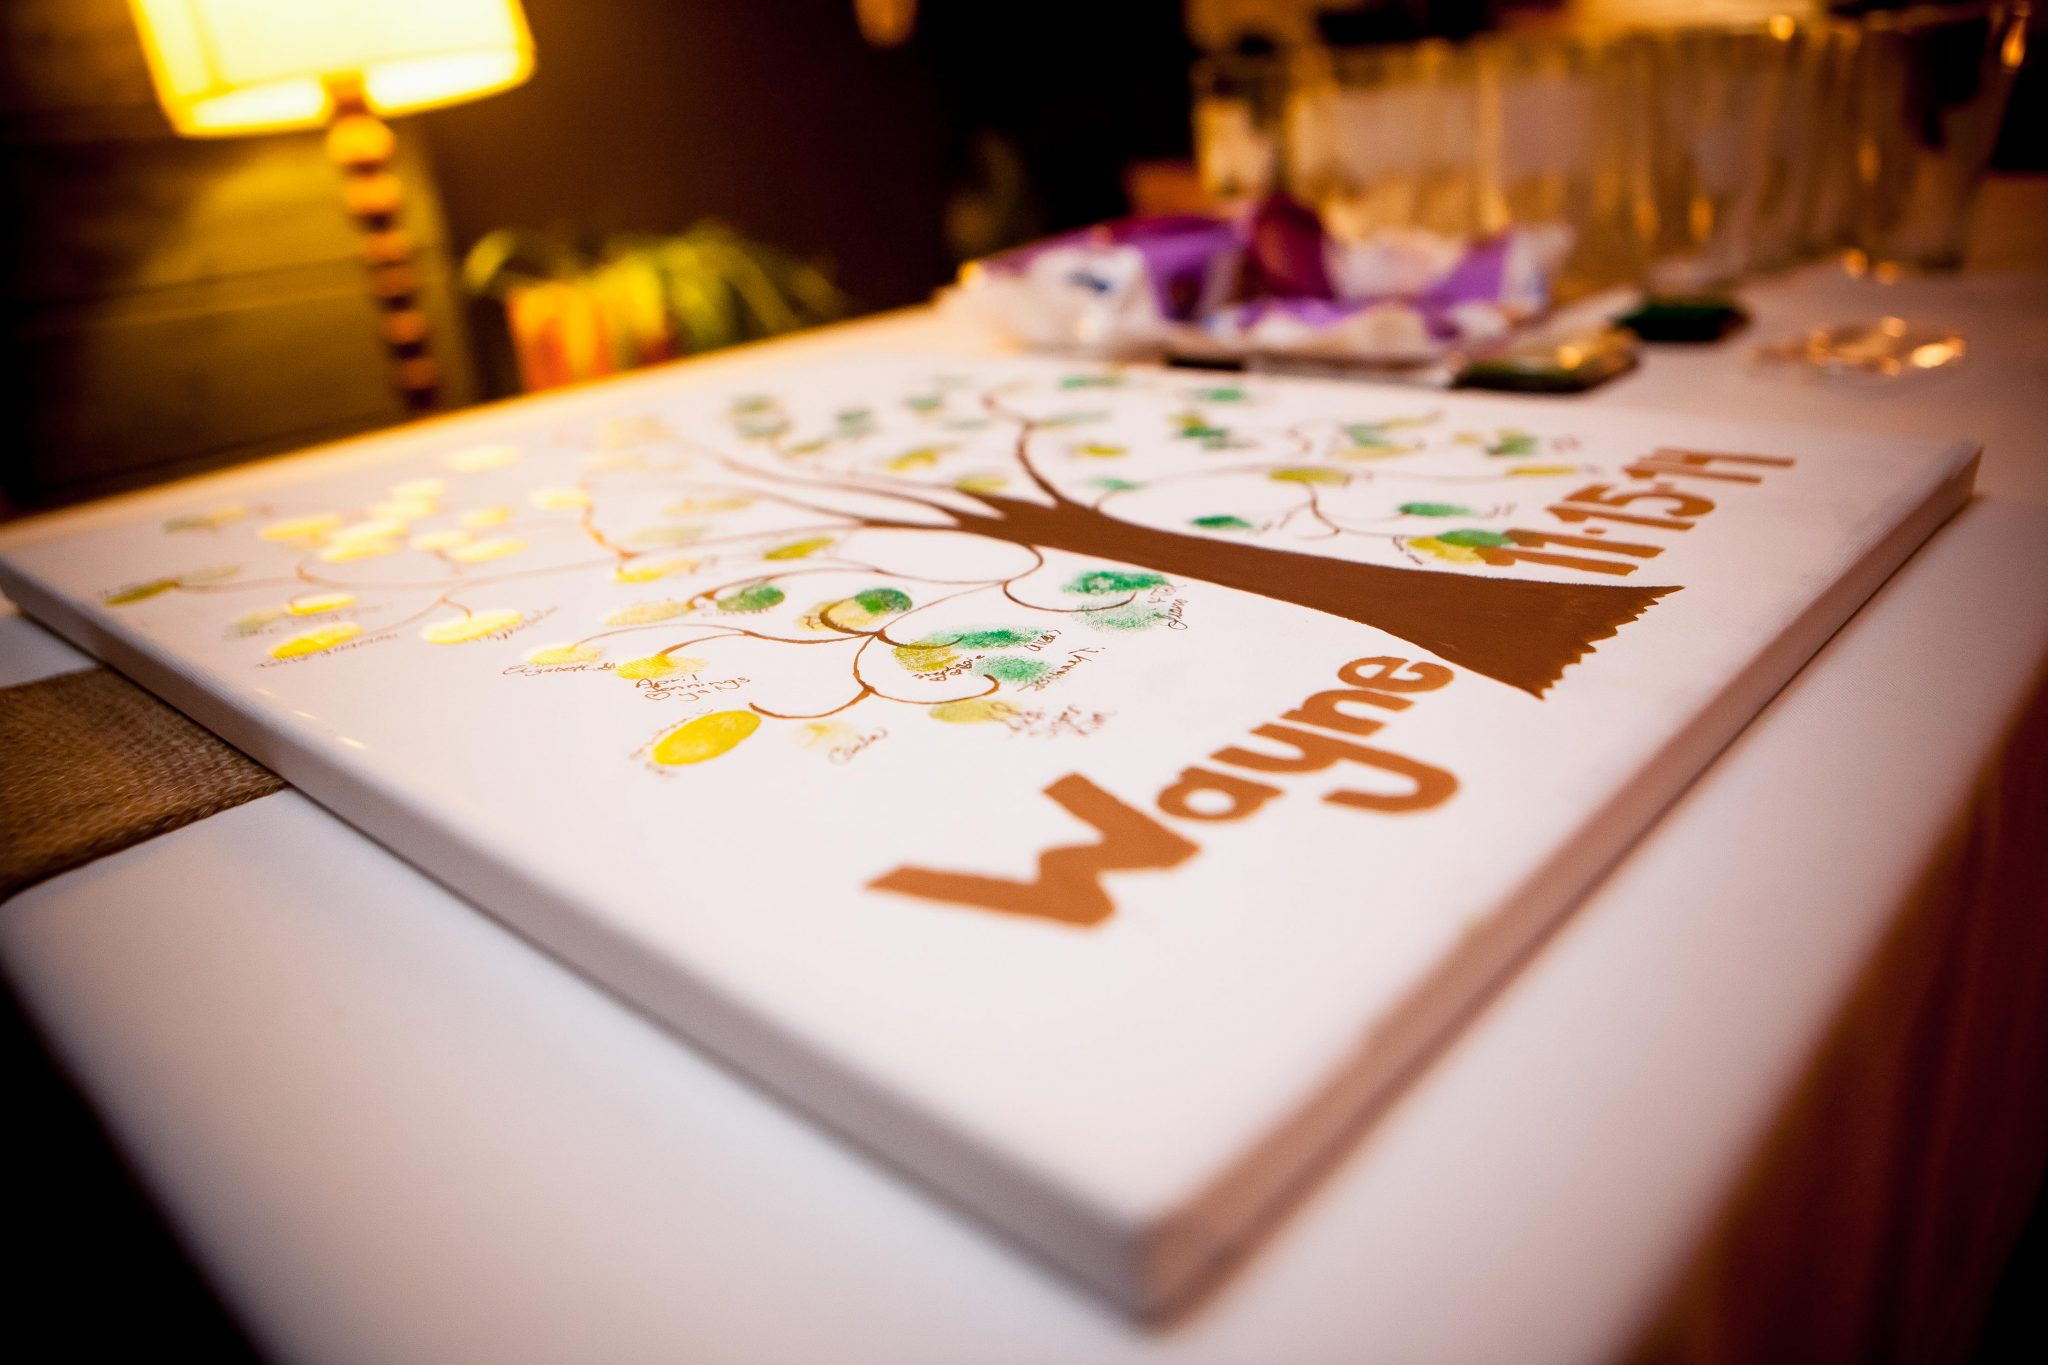 Wedding reception decor that guests sign for the bride and groom